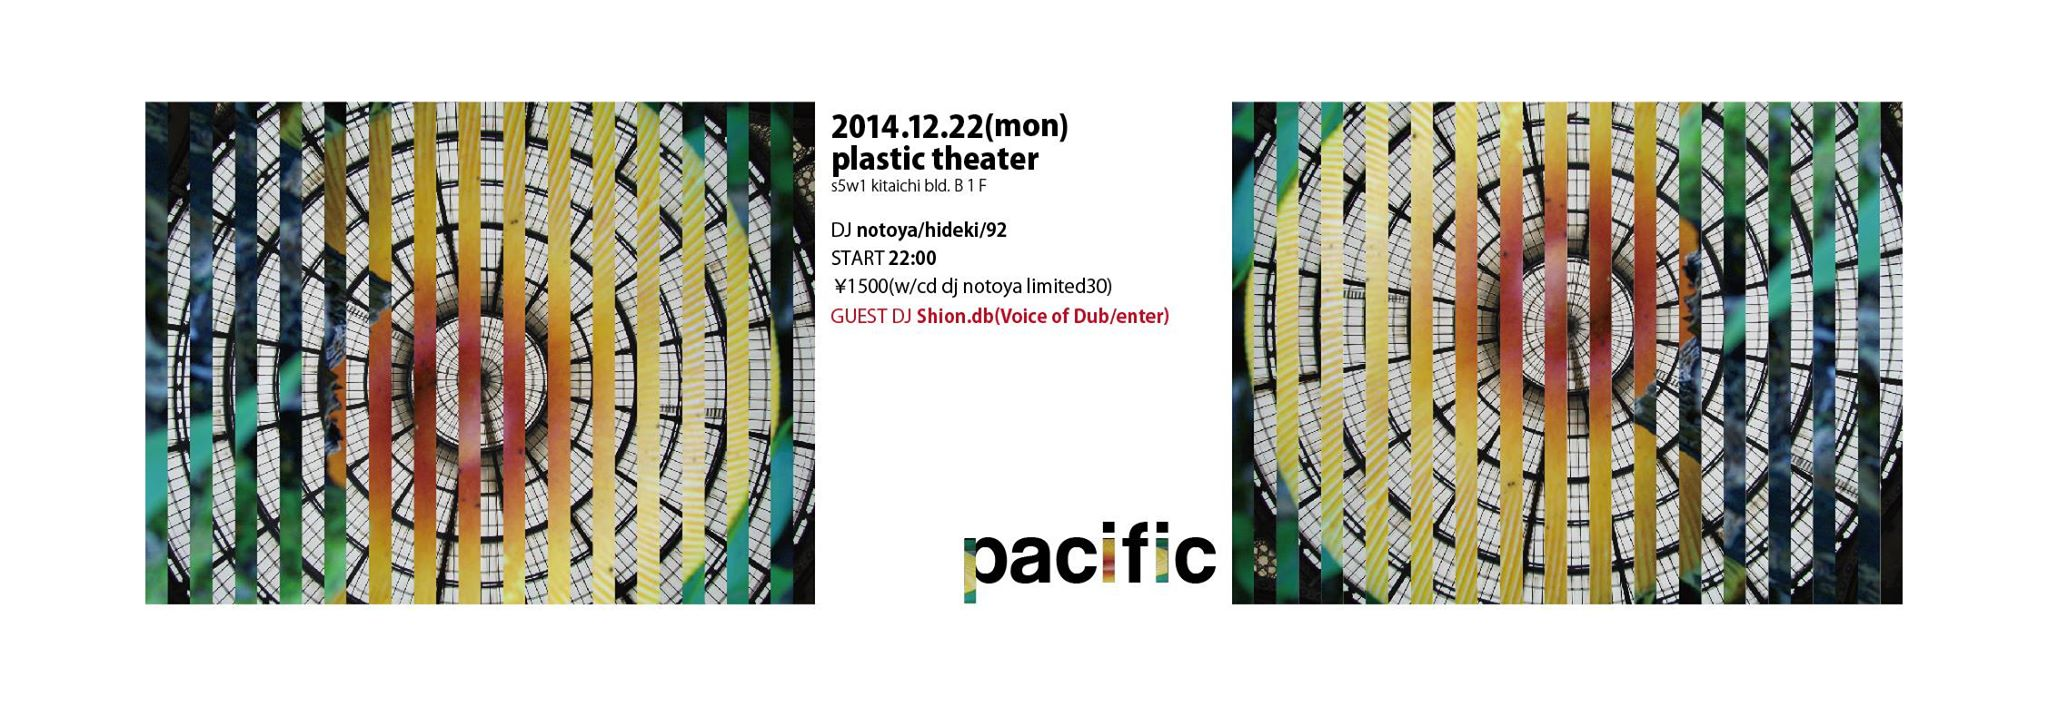 pacific_201412